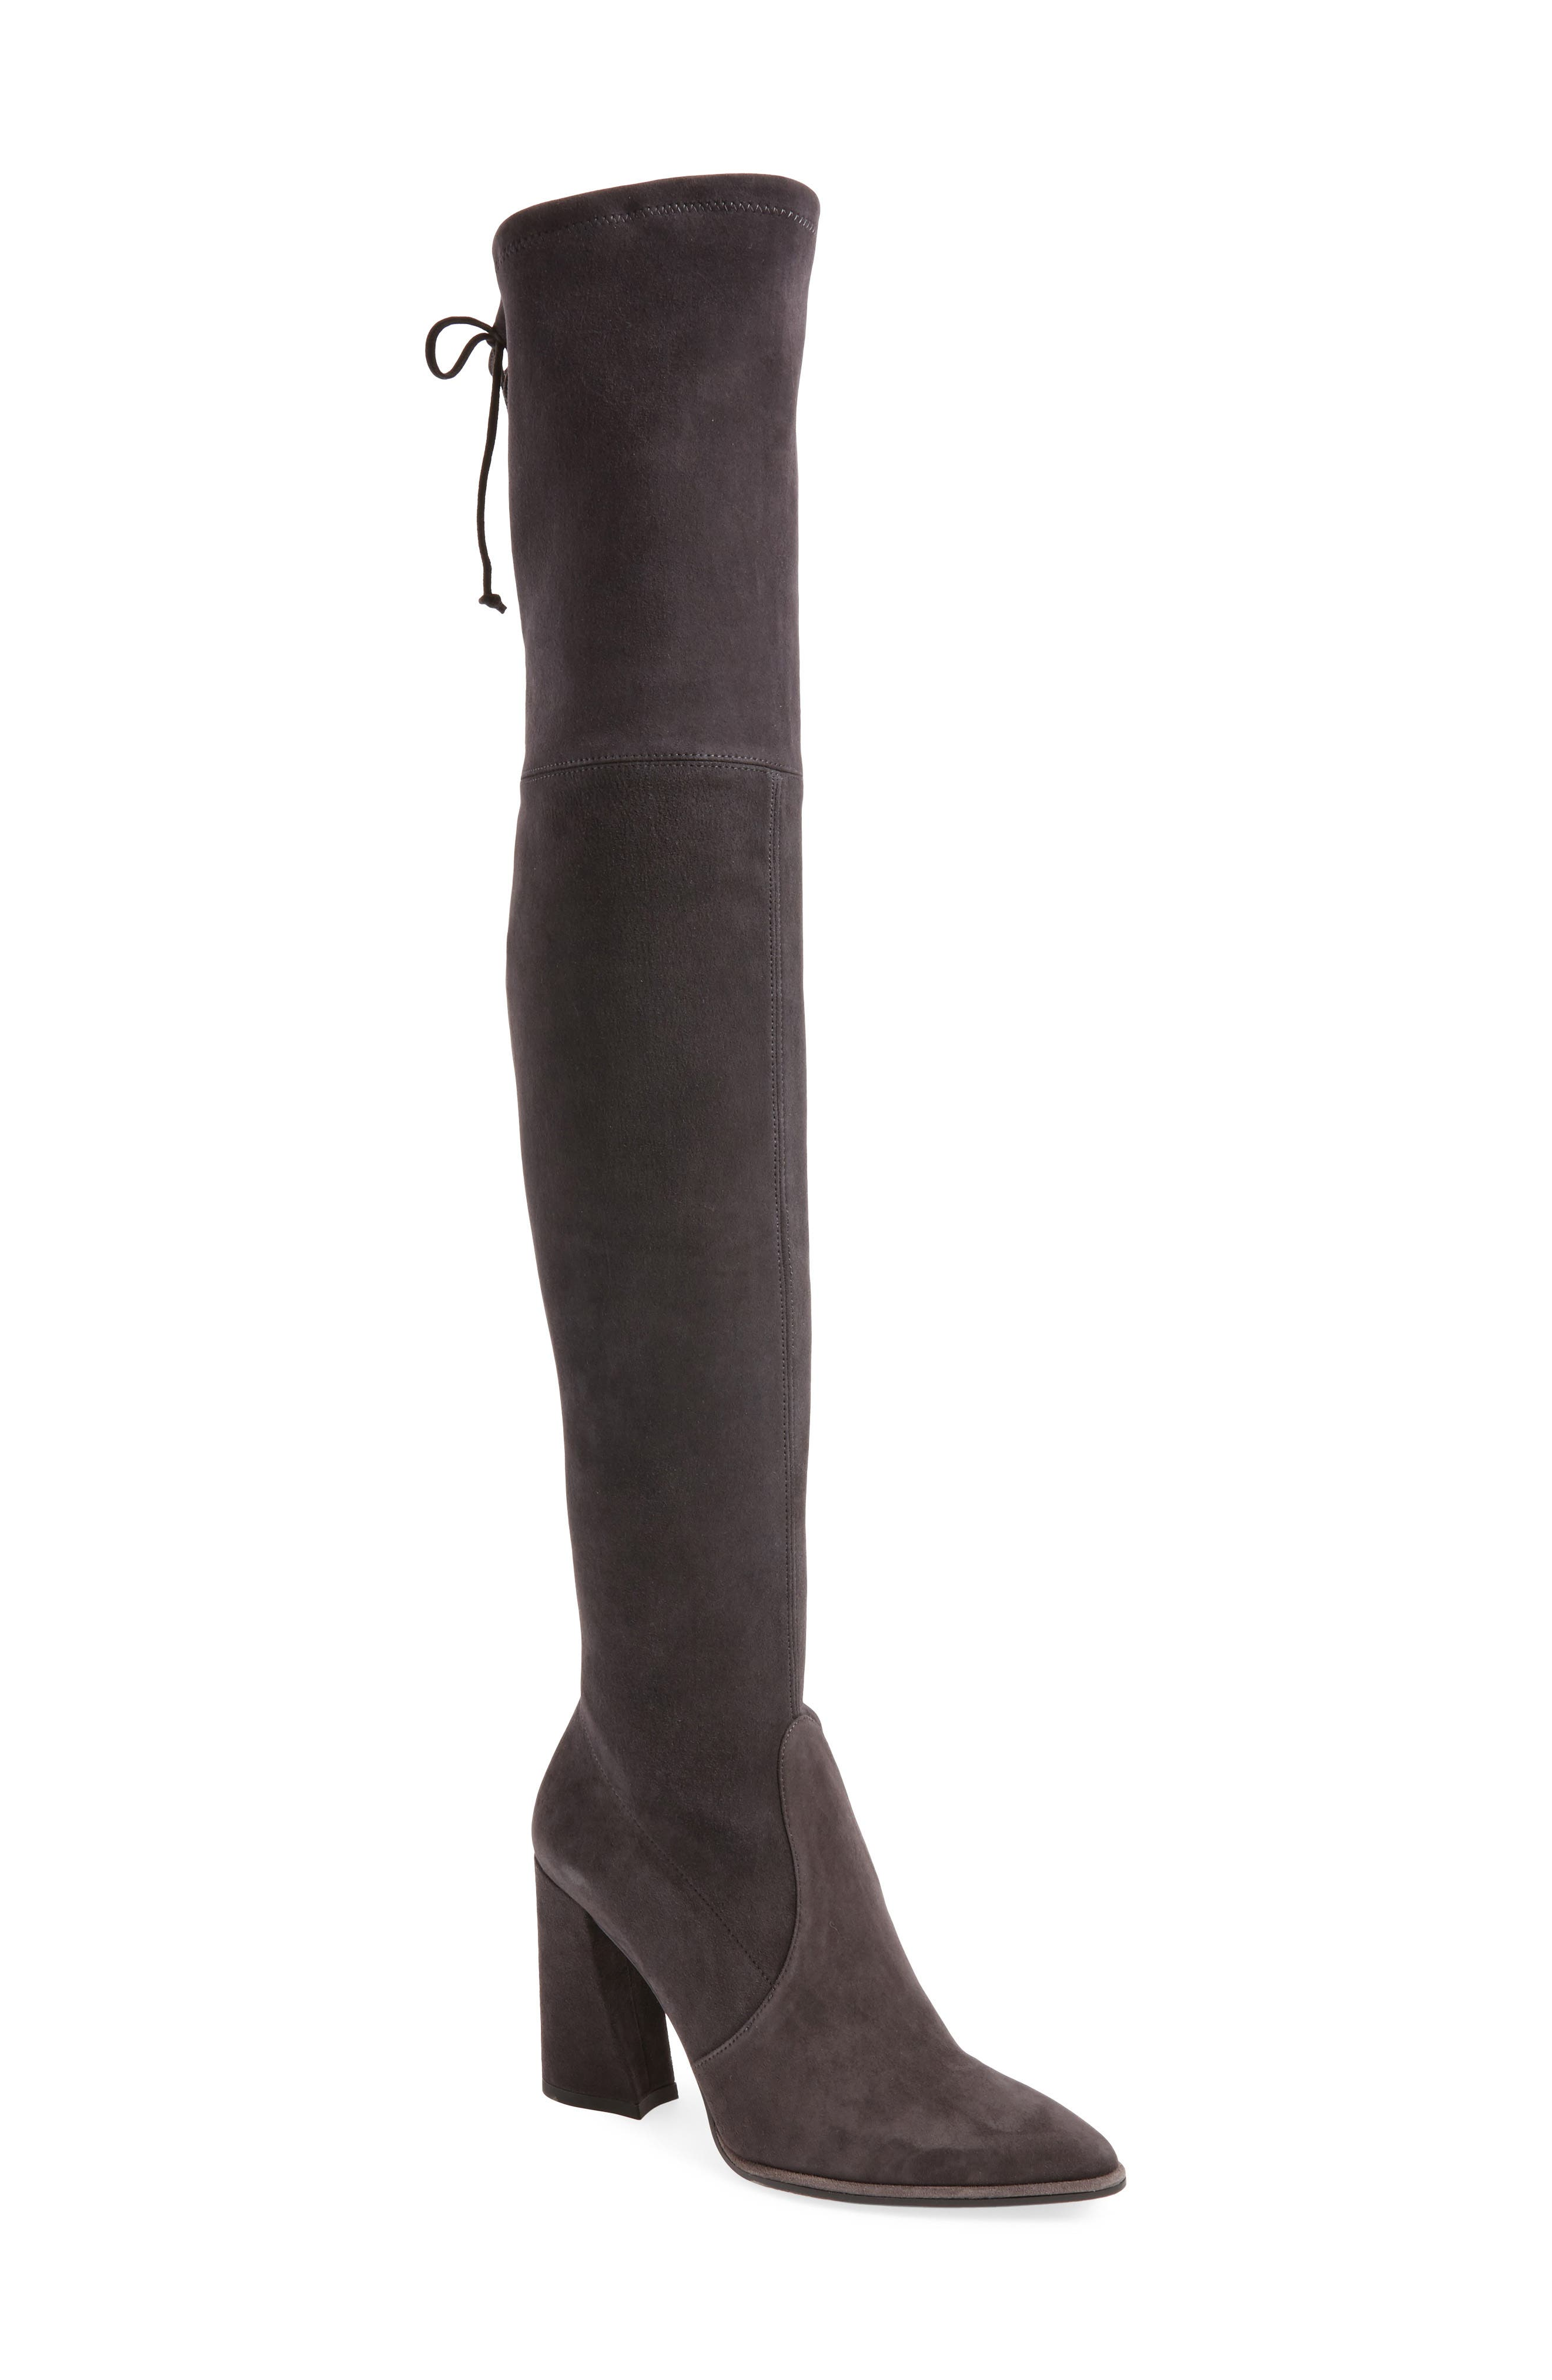 Funland Over the Knee Boot,                         Main,                         color, Anthracite Suede